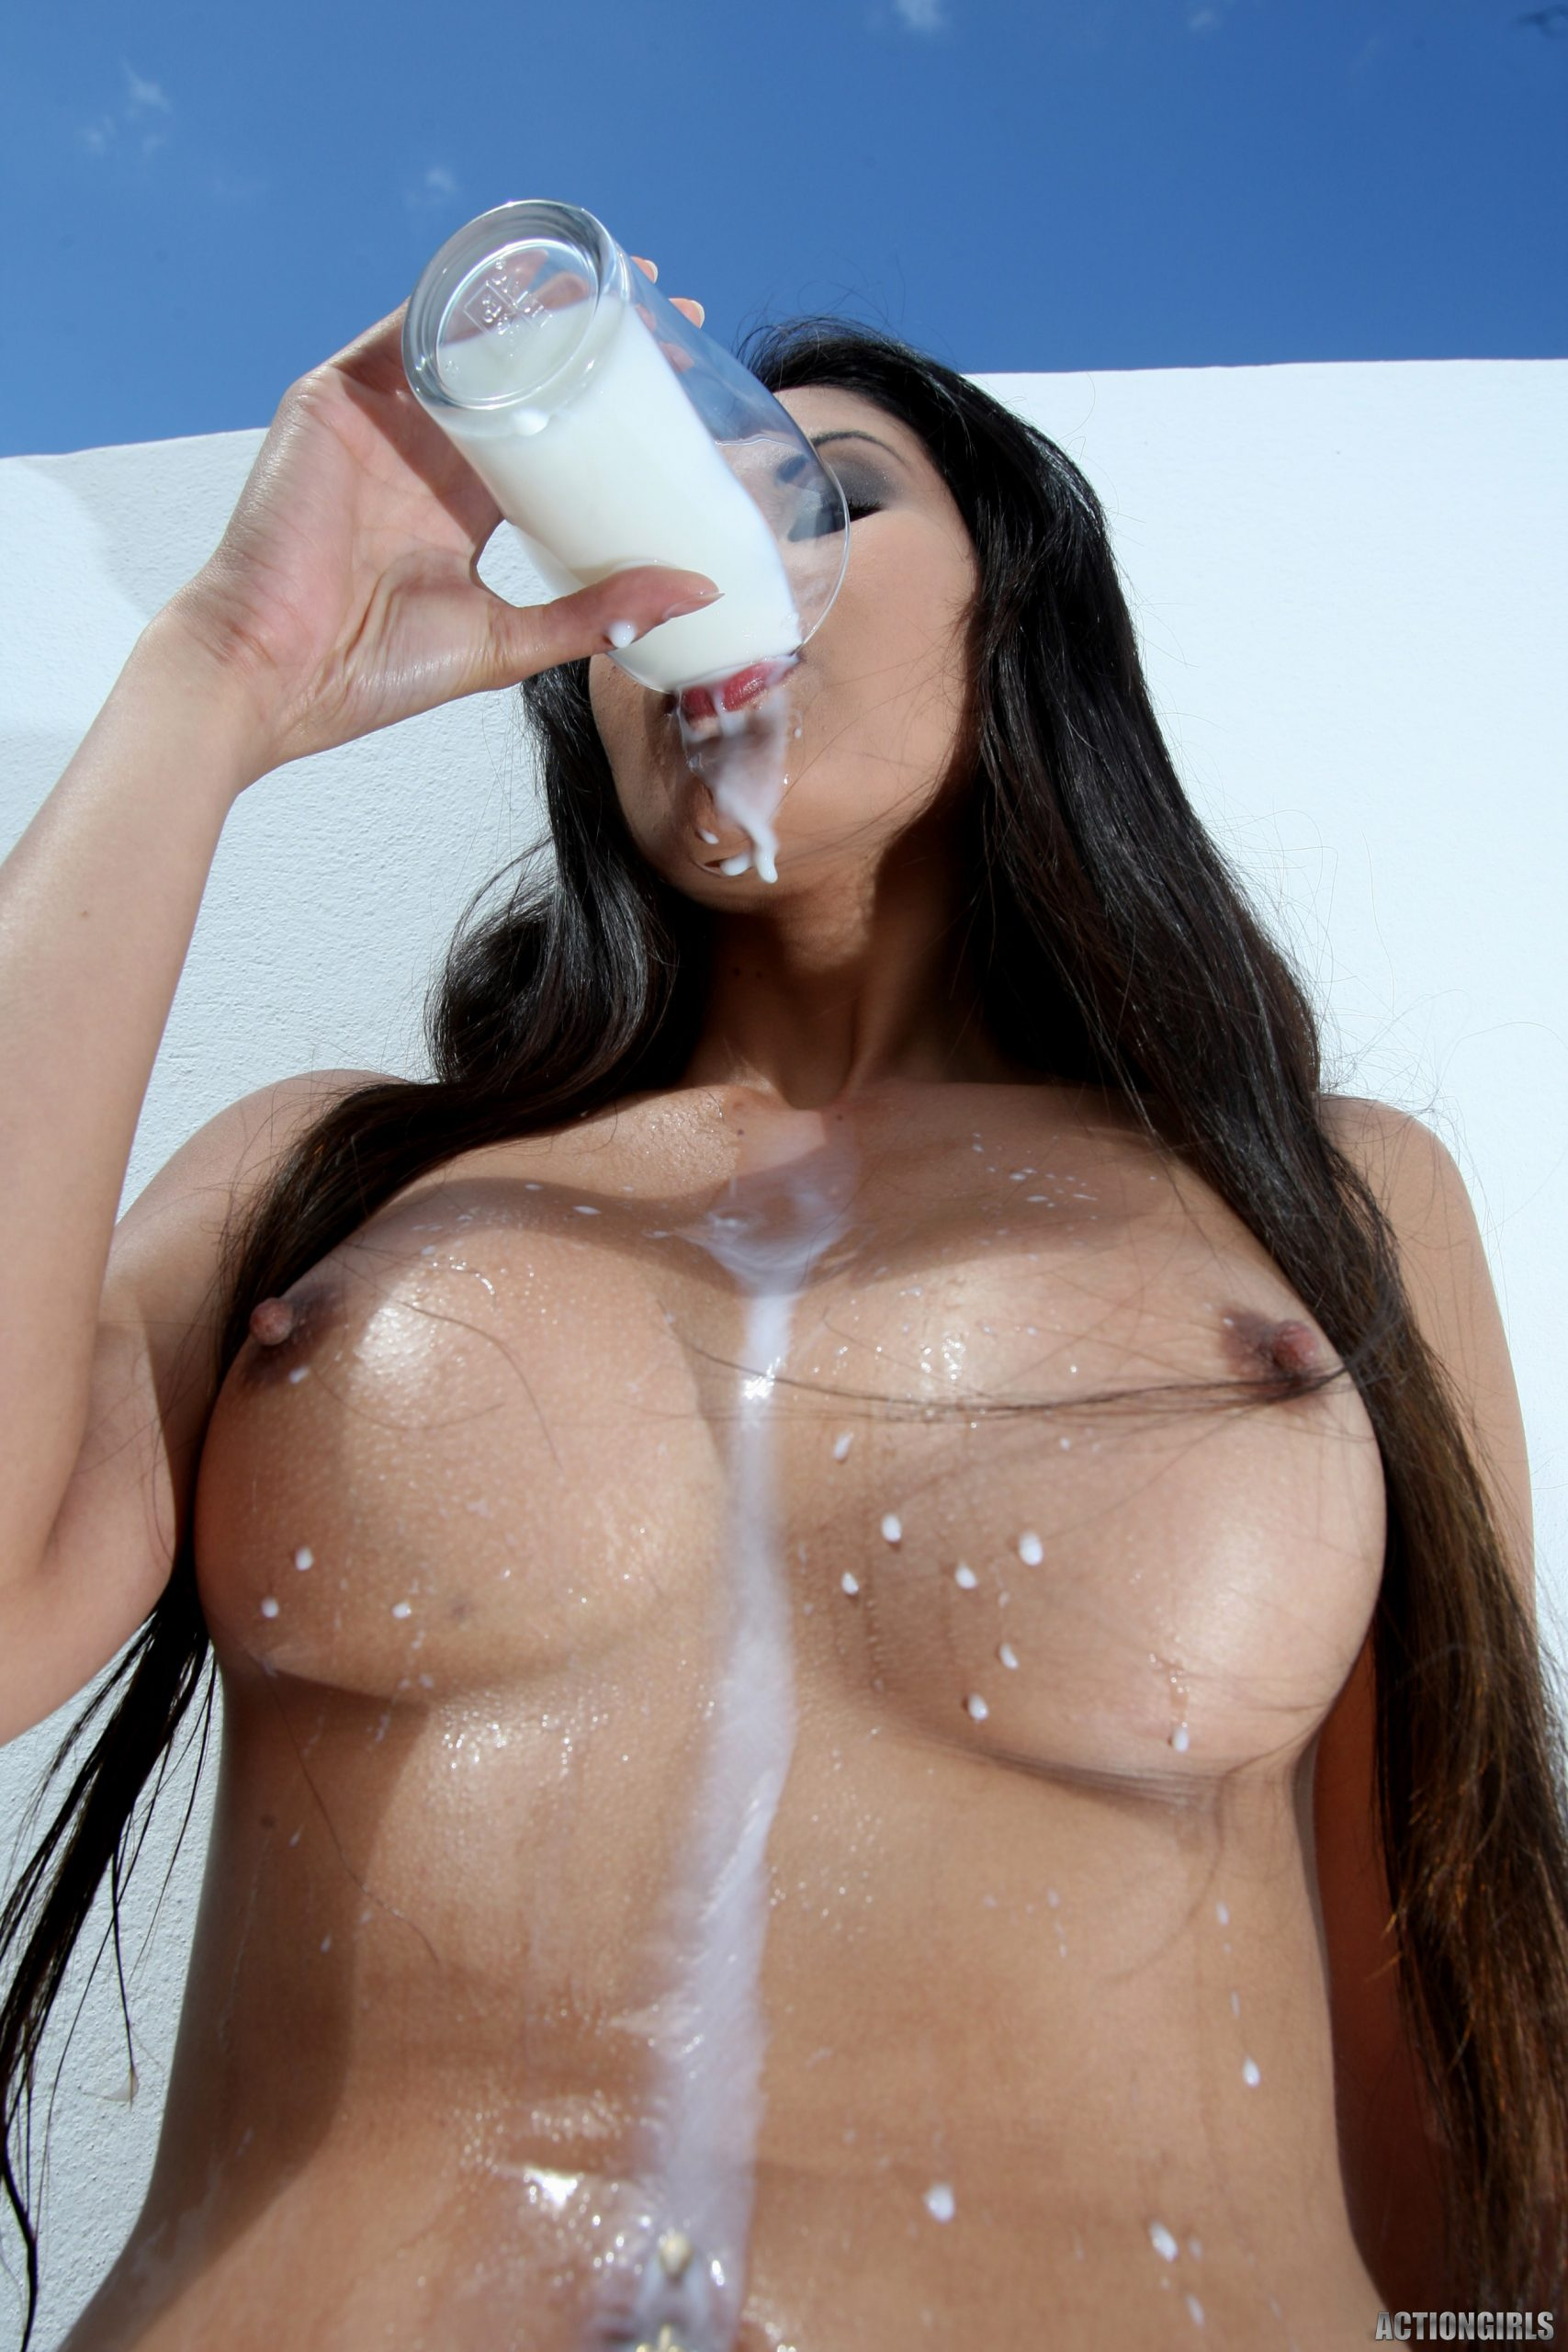 Danika Big Tits Get Milky for Actiongirls